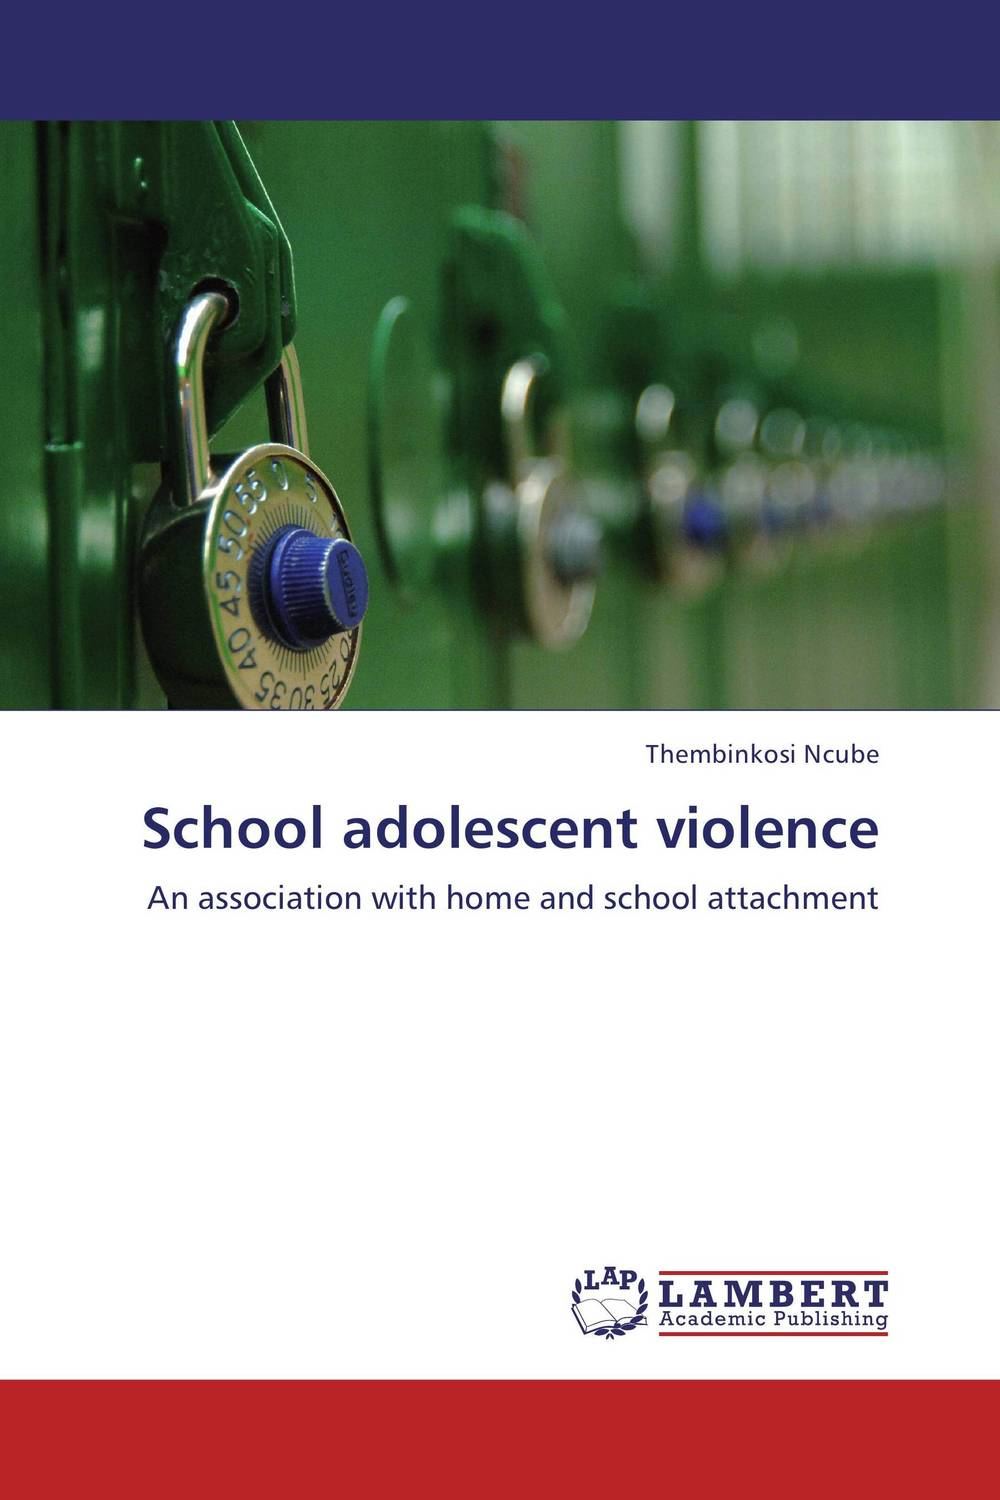 School adolescent violence arcade ndoricimpa inflation output growth and their uncertainties in south africa empirical evidence from an asymmetric multivariate garch m model